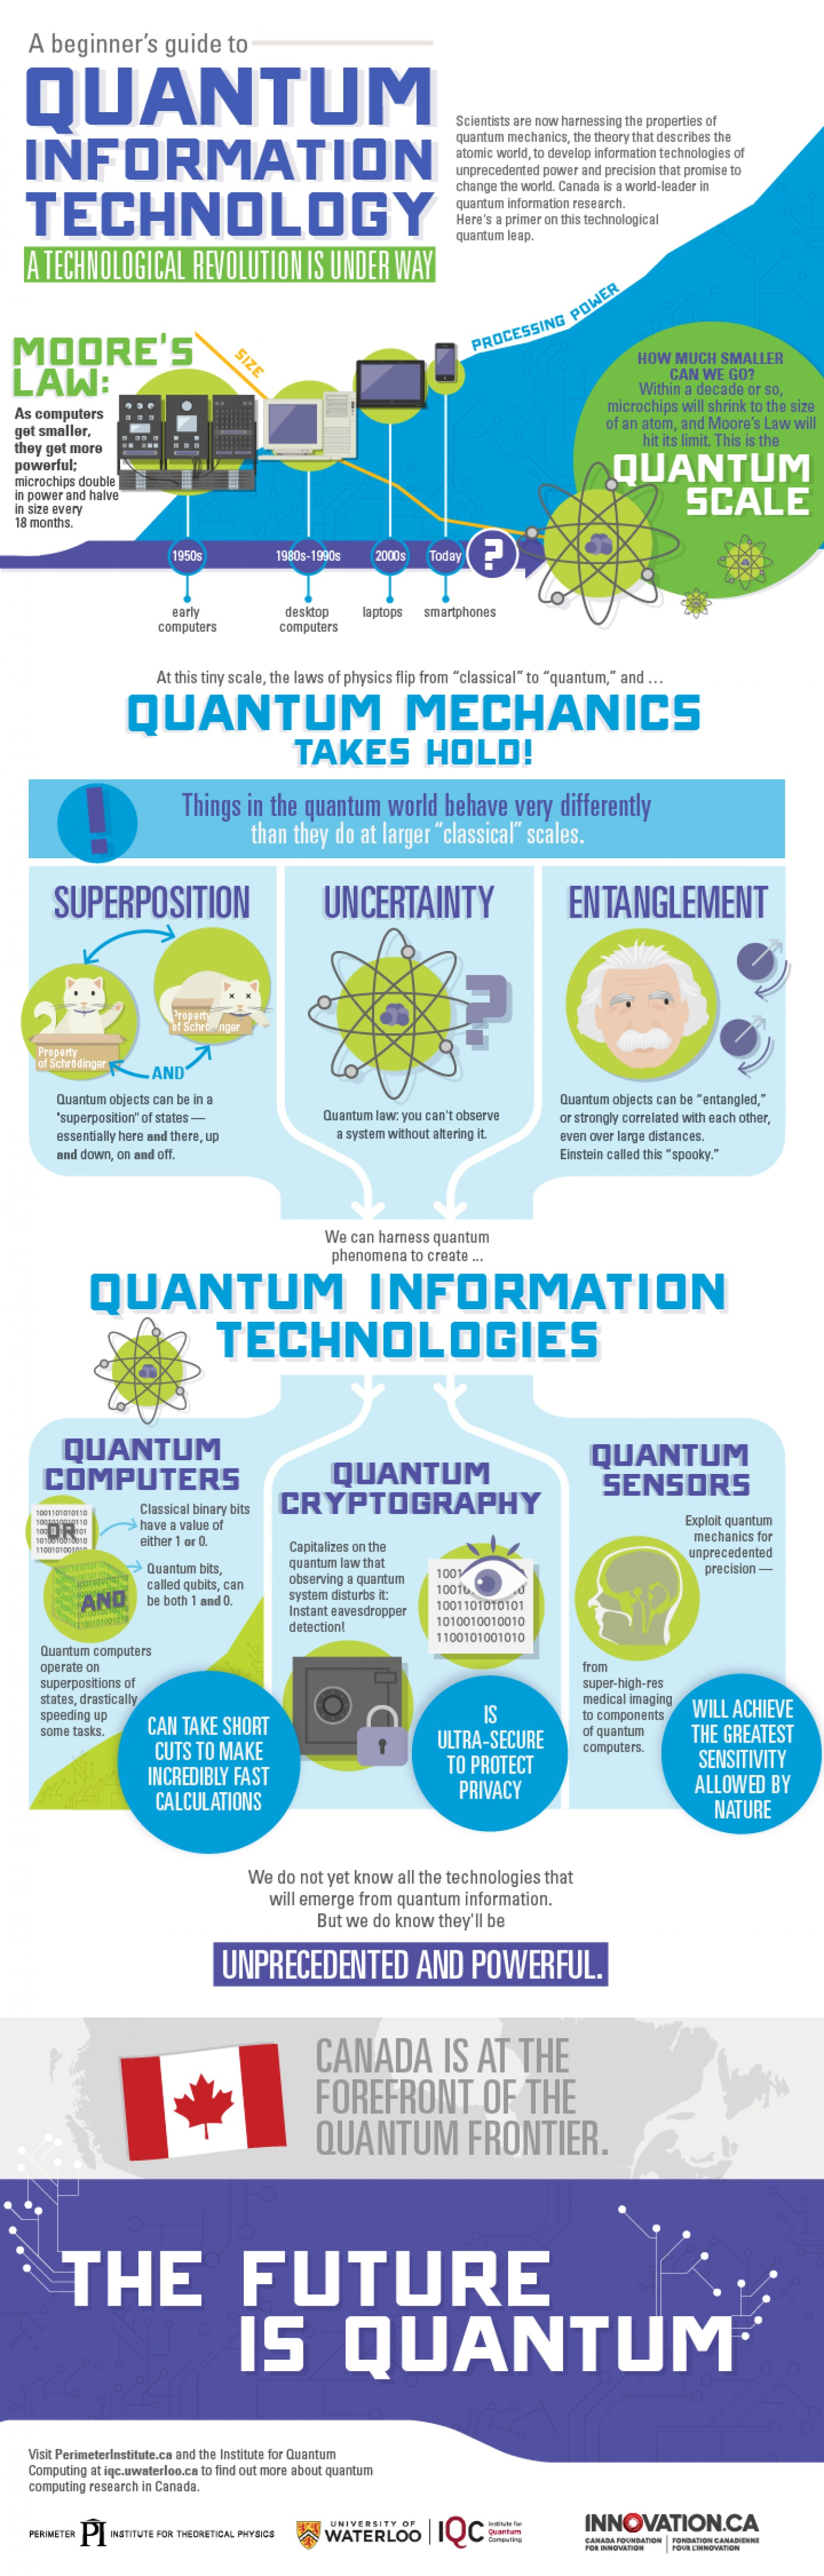 A Beginner S Guide To Quantum Information Technology Infographic